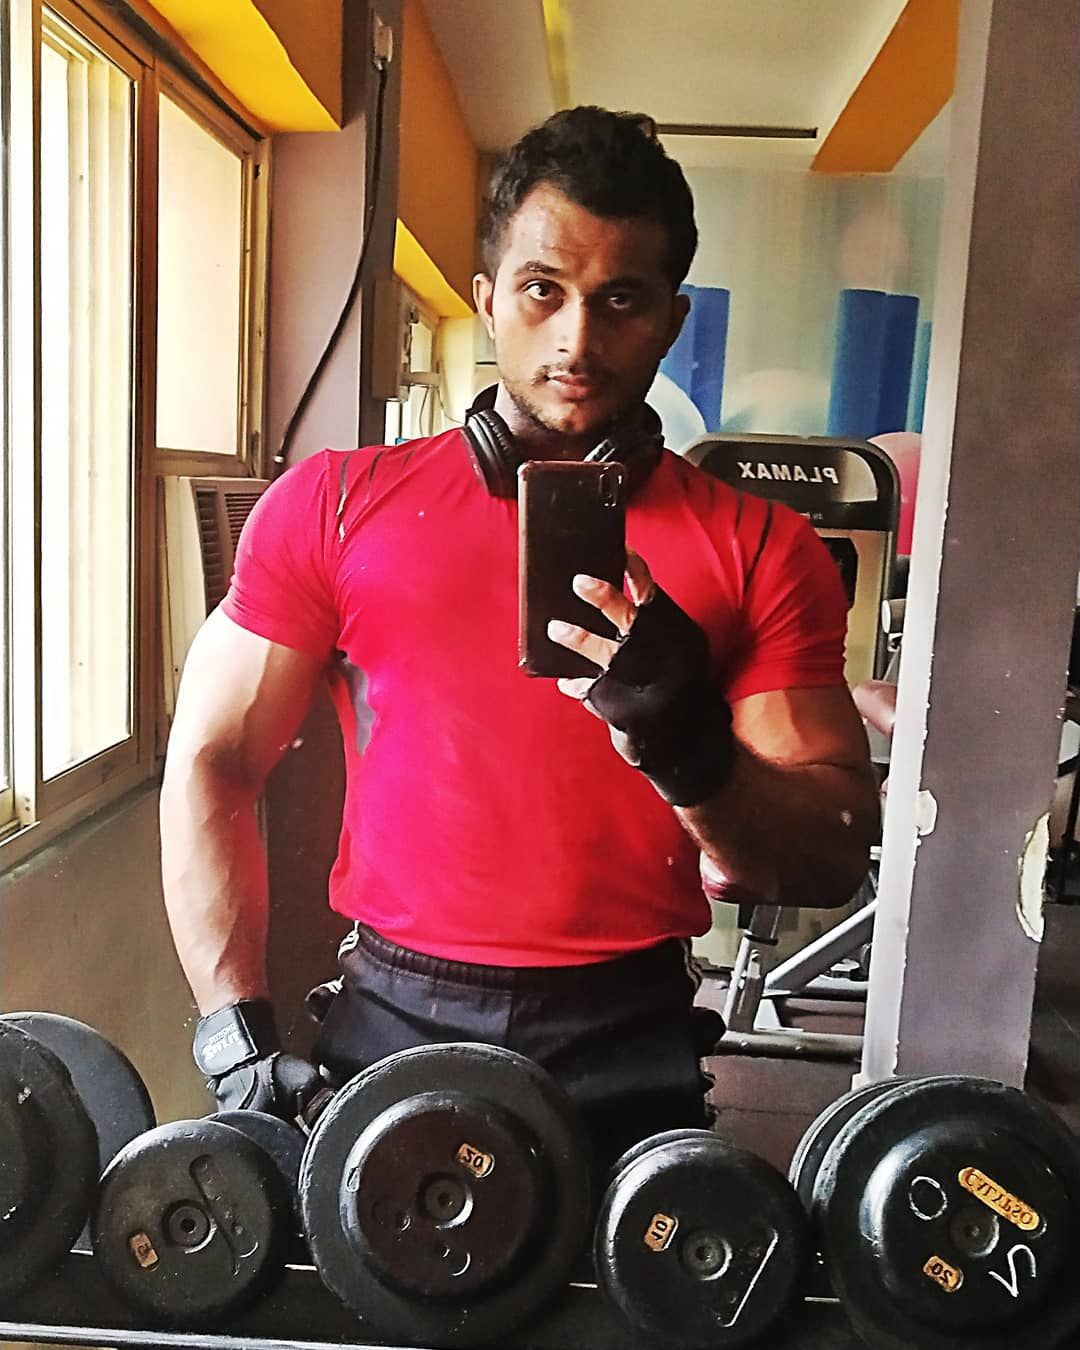 #fitness Pump #personaltrainer #bigmuscles #india #thane #mumbai #motivation #fitness #bigmusclenutr...